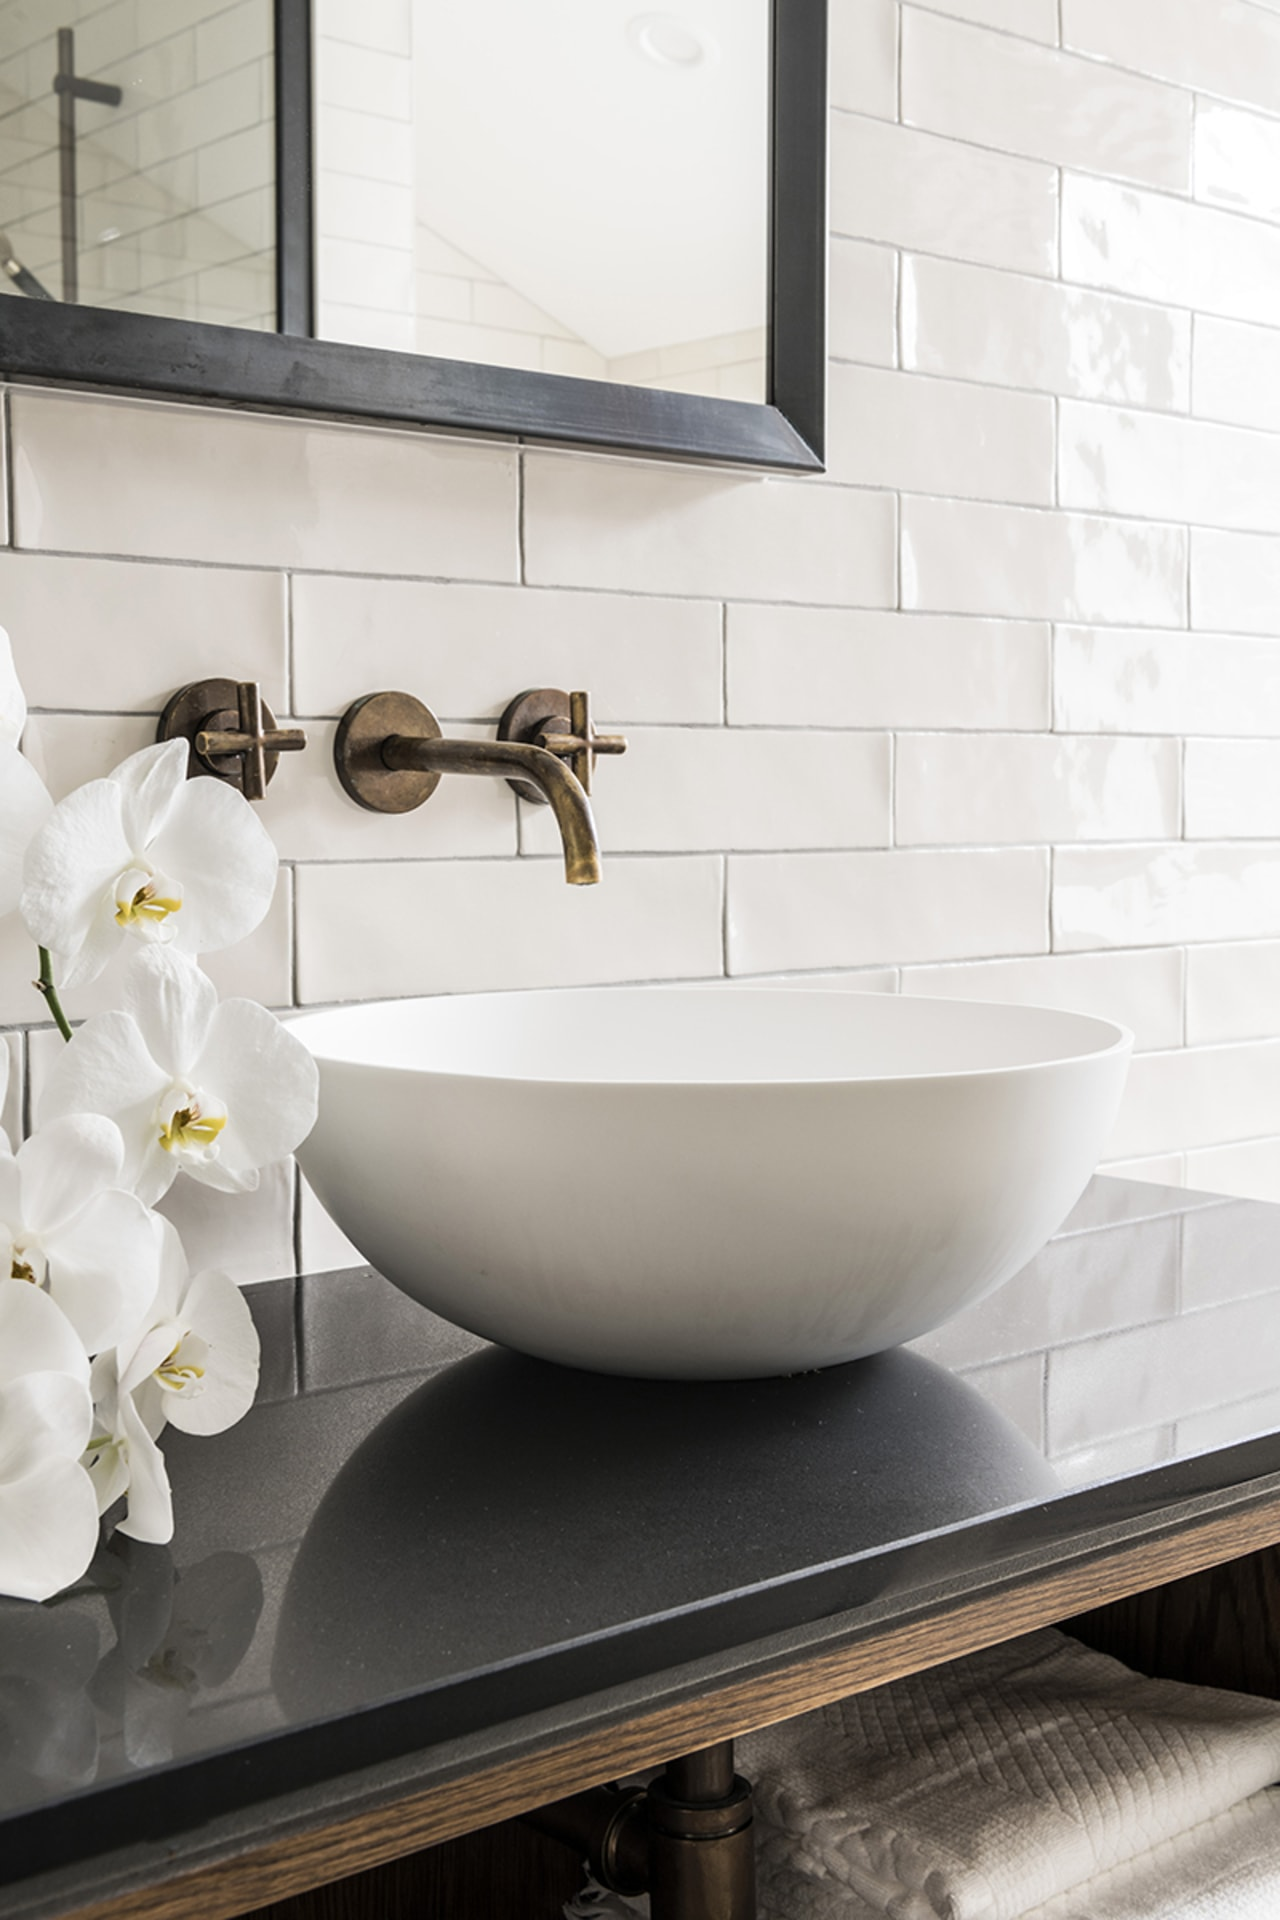 Past and present – brass tapware pays homage white